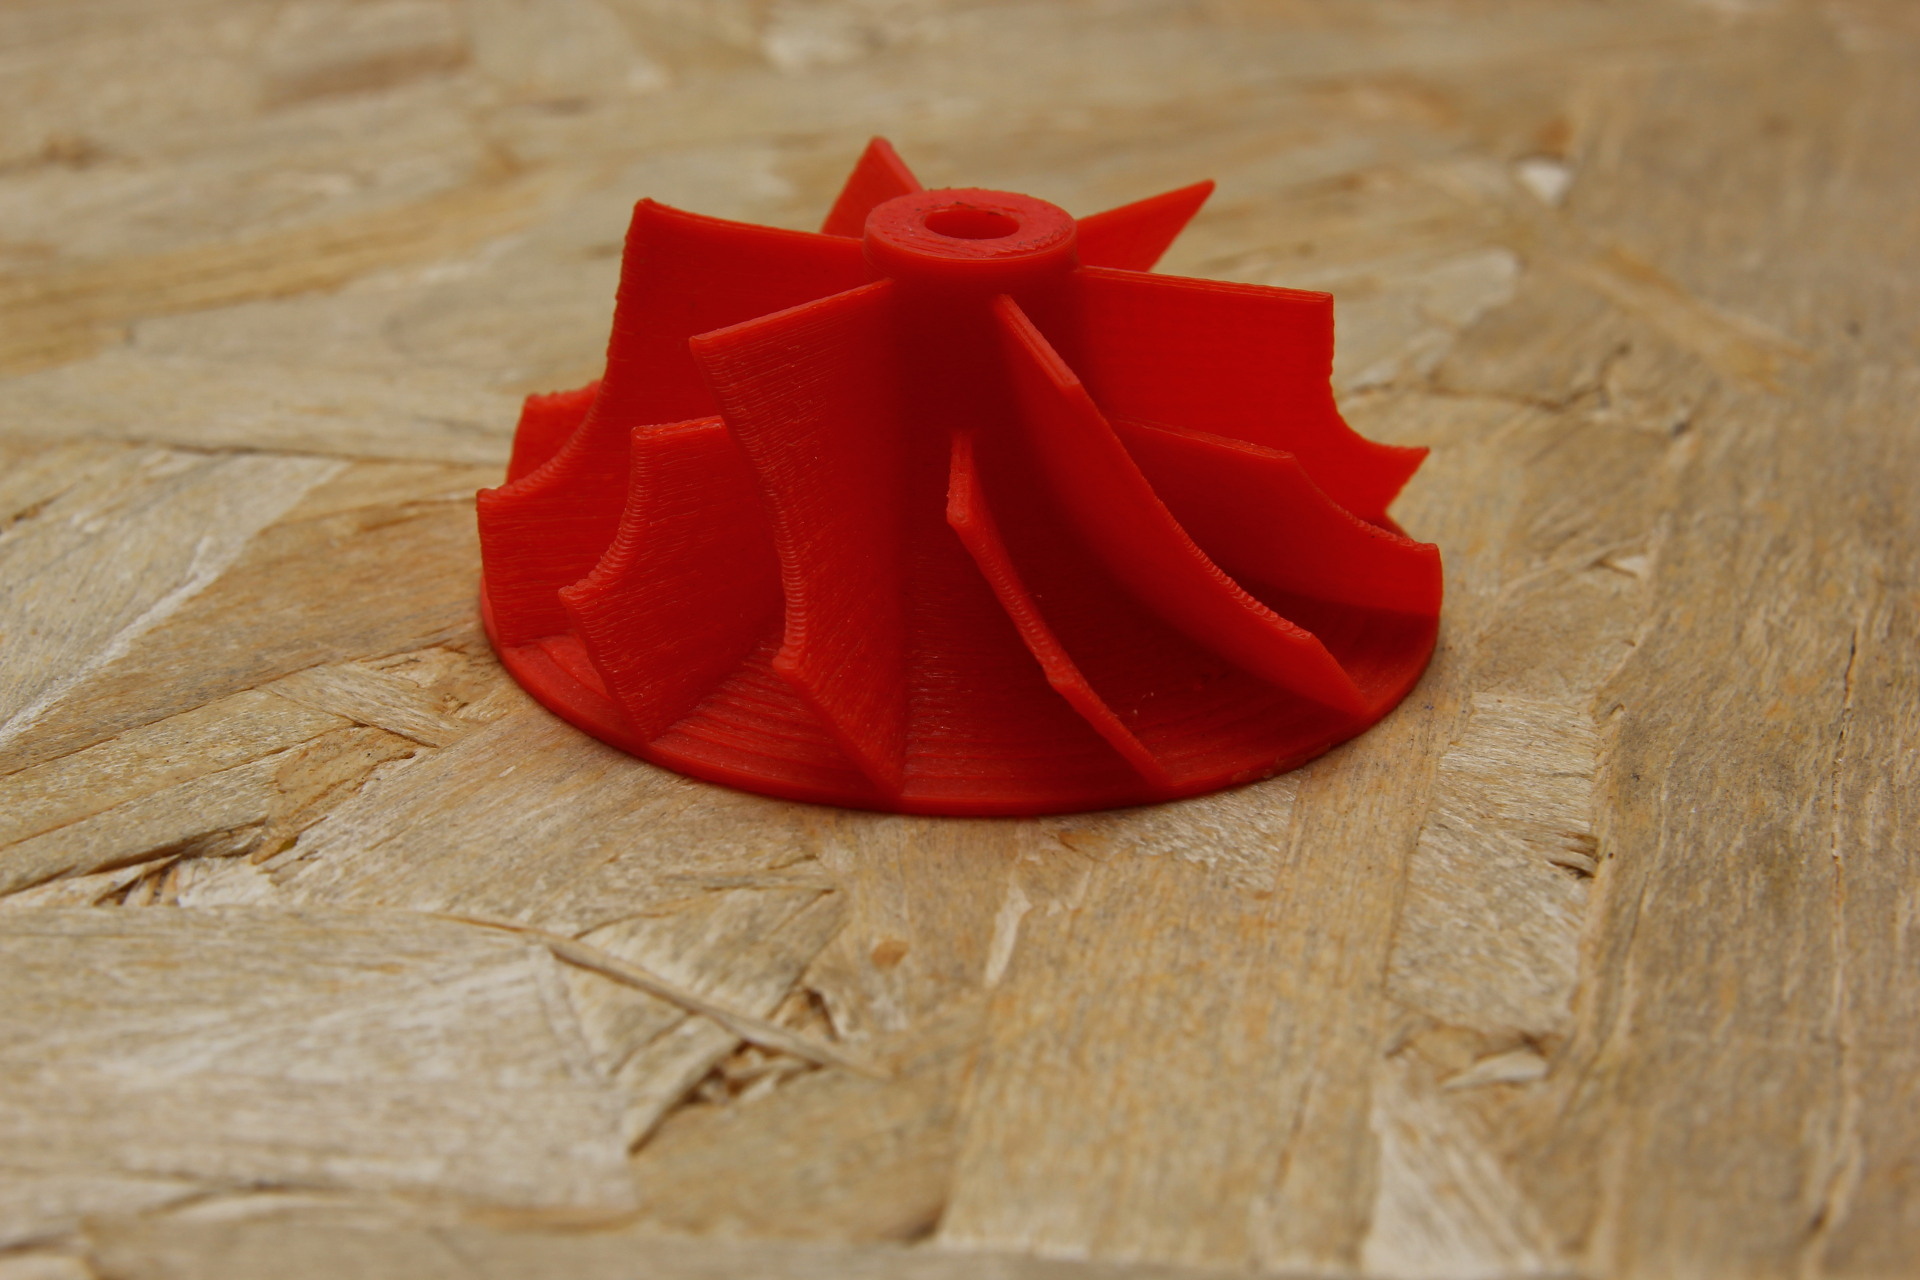 turbina stampata layer 0.2 pla plastaprint